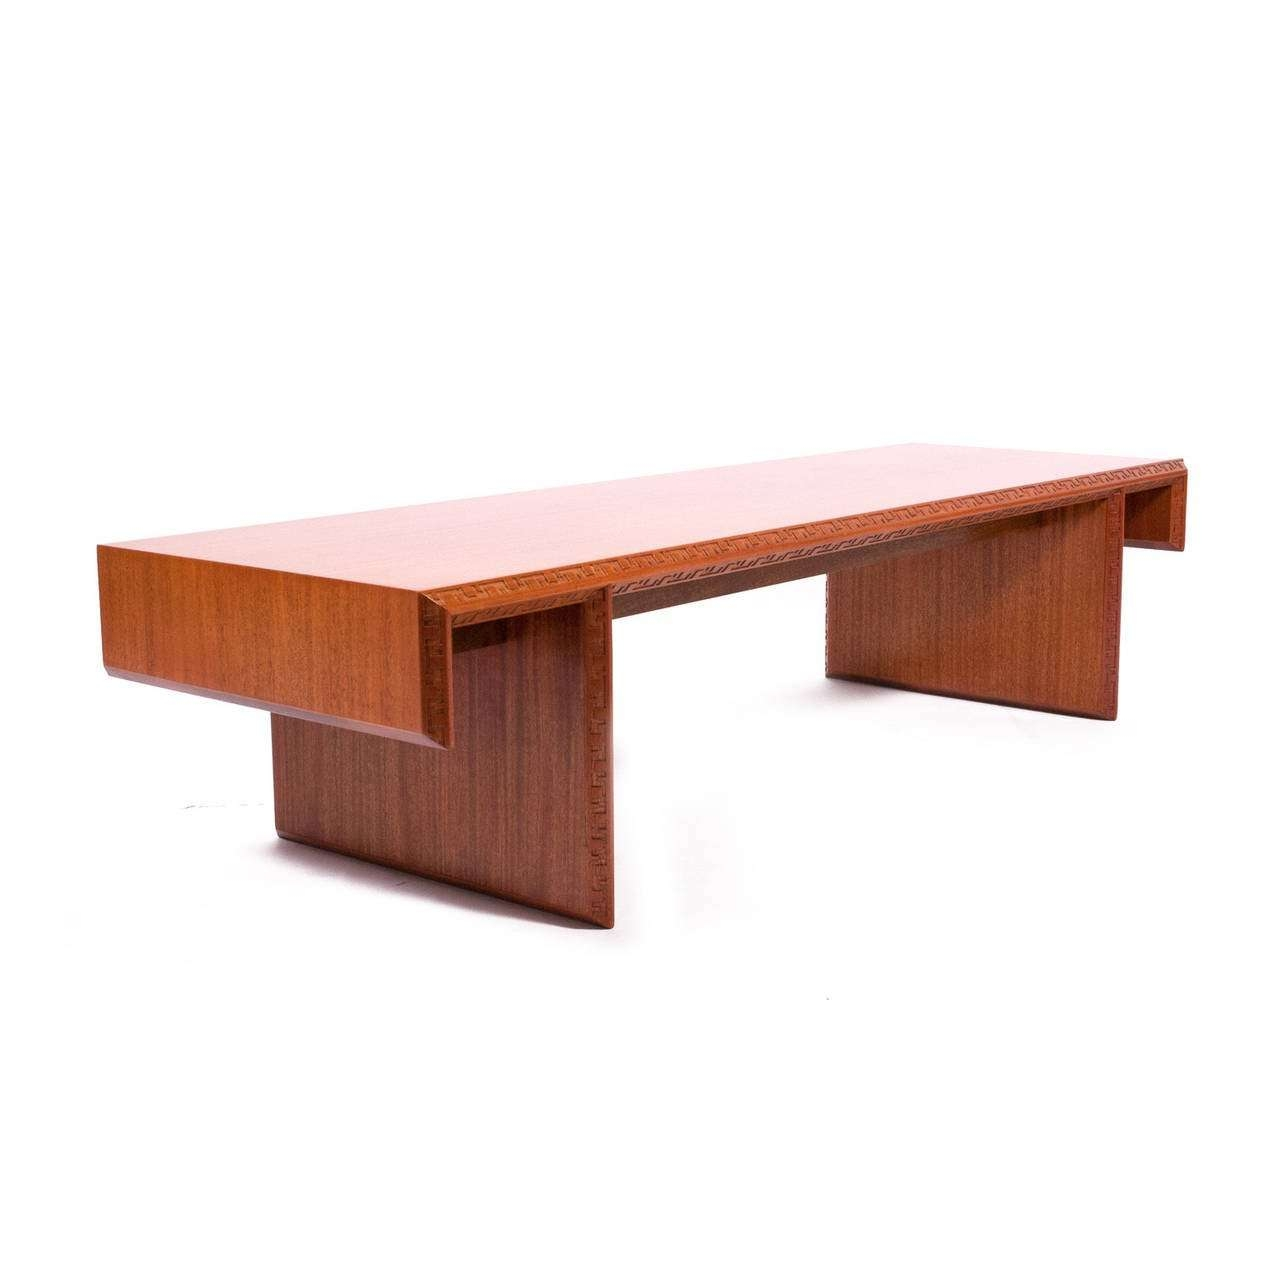 Frank Lloyd Wright Mahogany Coffee Table Or Bench At 1Stdibs With Famous Mahogany Coffee Tables (View 15 of 20)